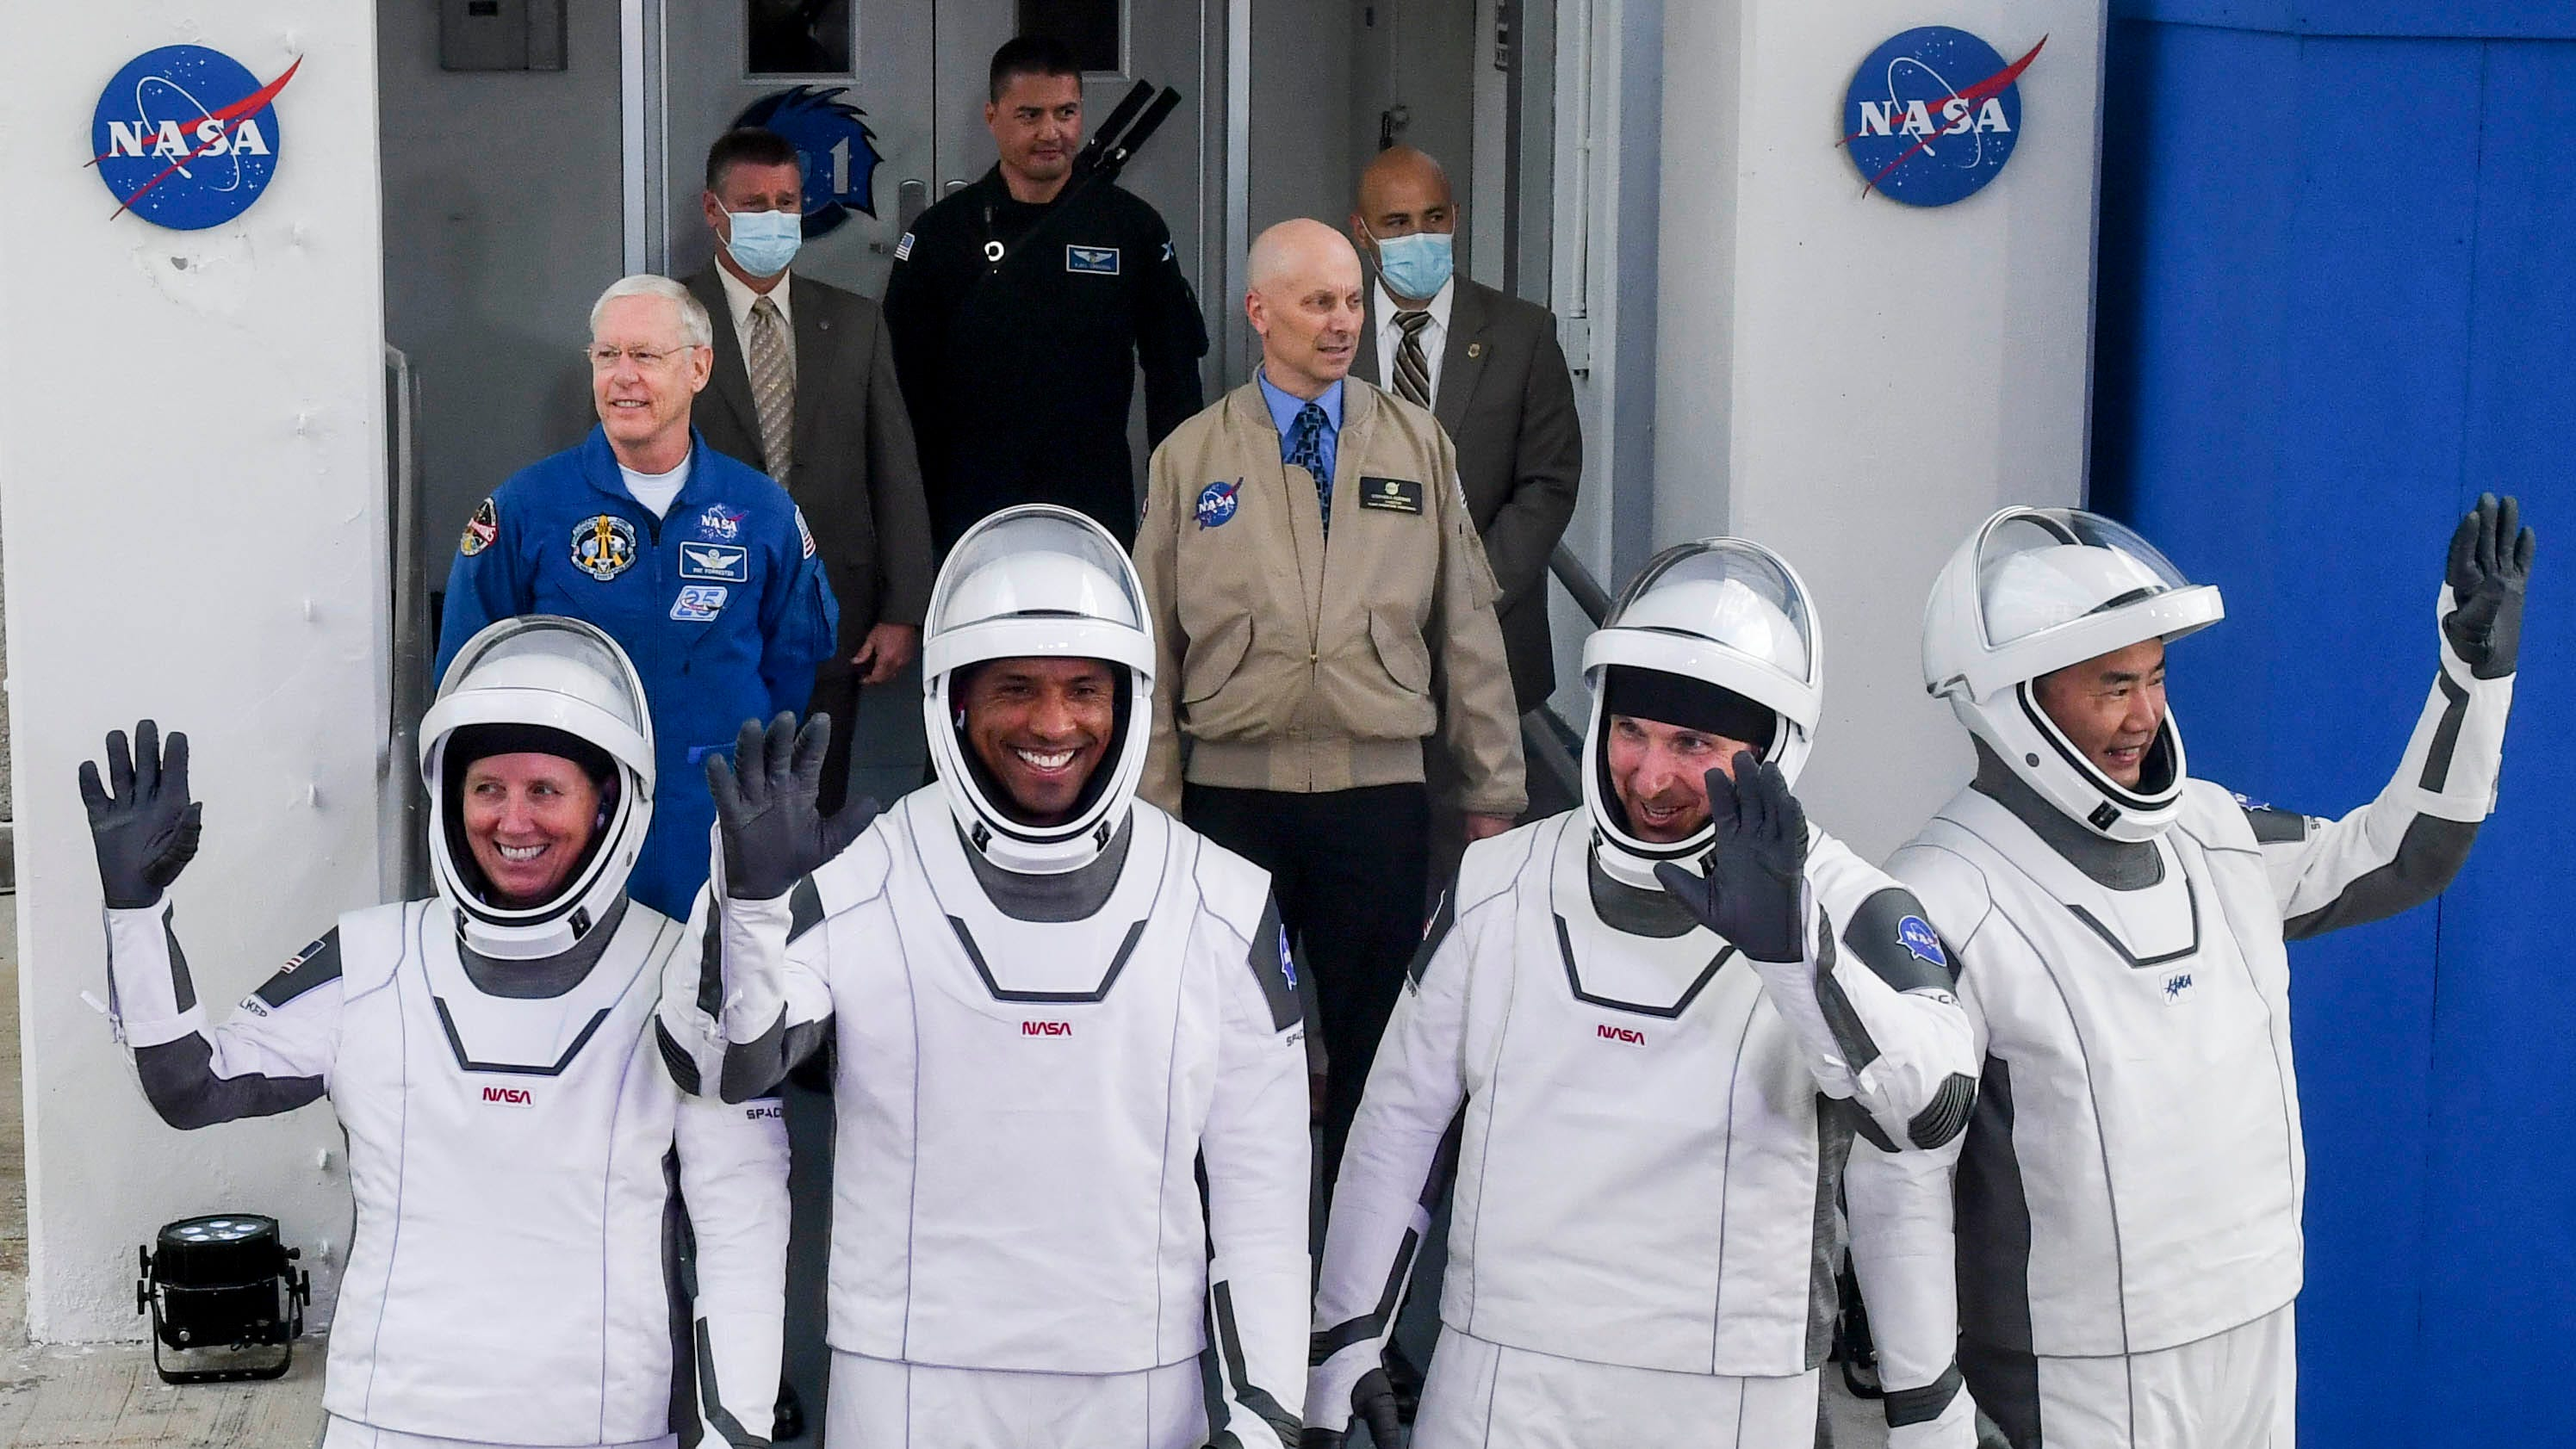 SpaceX Crew-1 astronauts Shannon Walker, Victor Glover, Michael Hopkins, and Soichi Noguchi wave to the crowd before heading to the launch pad Sunday, November 15, 2020. The four will ride a Falcon 9 rocket to the International Space Station.